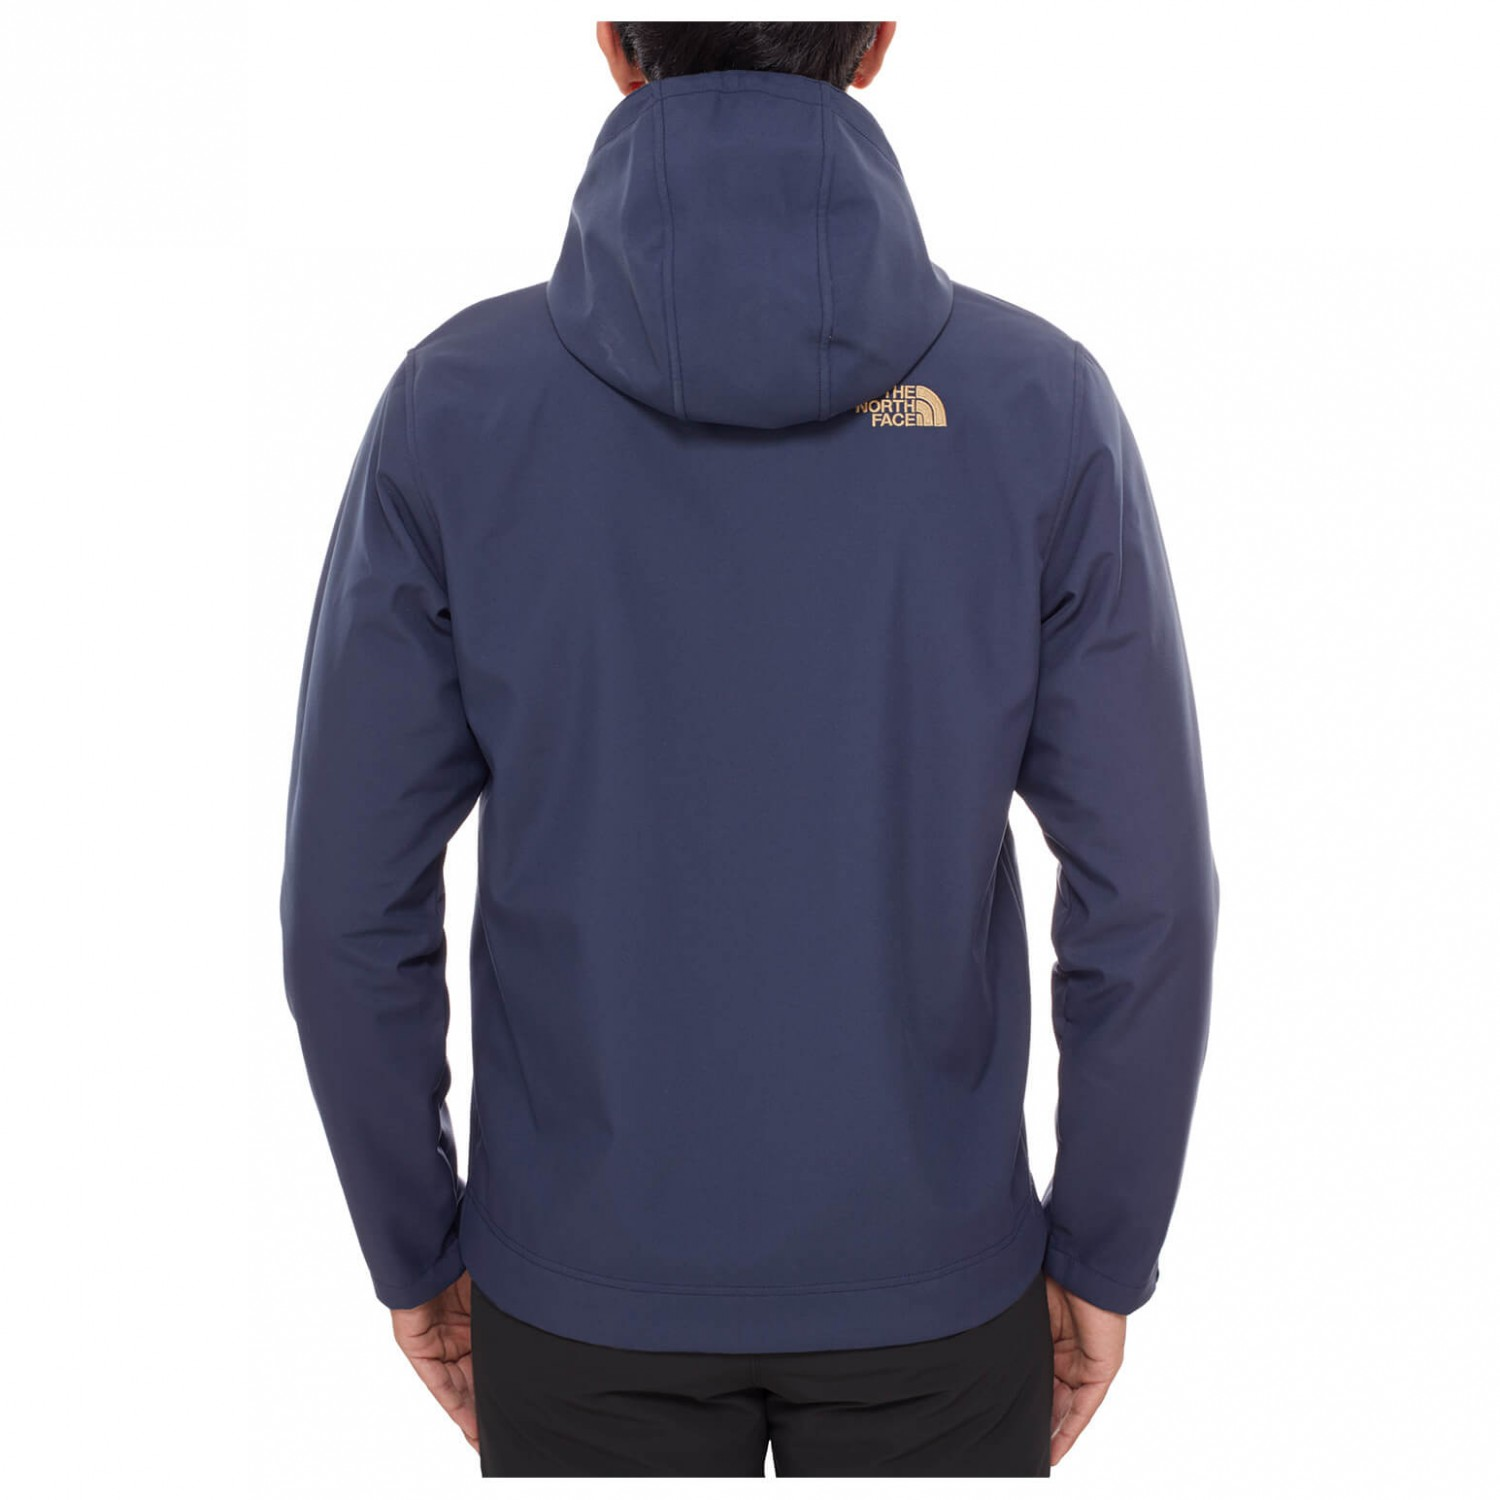 ... The North Face - Durango Hoodie - Giacca softshell ... 0abbadc5a72f